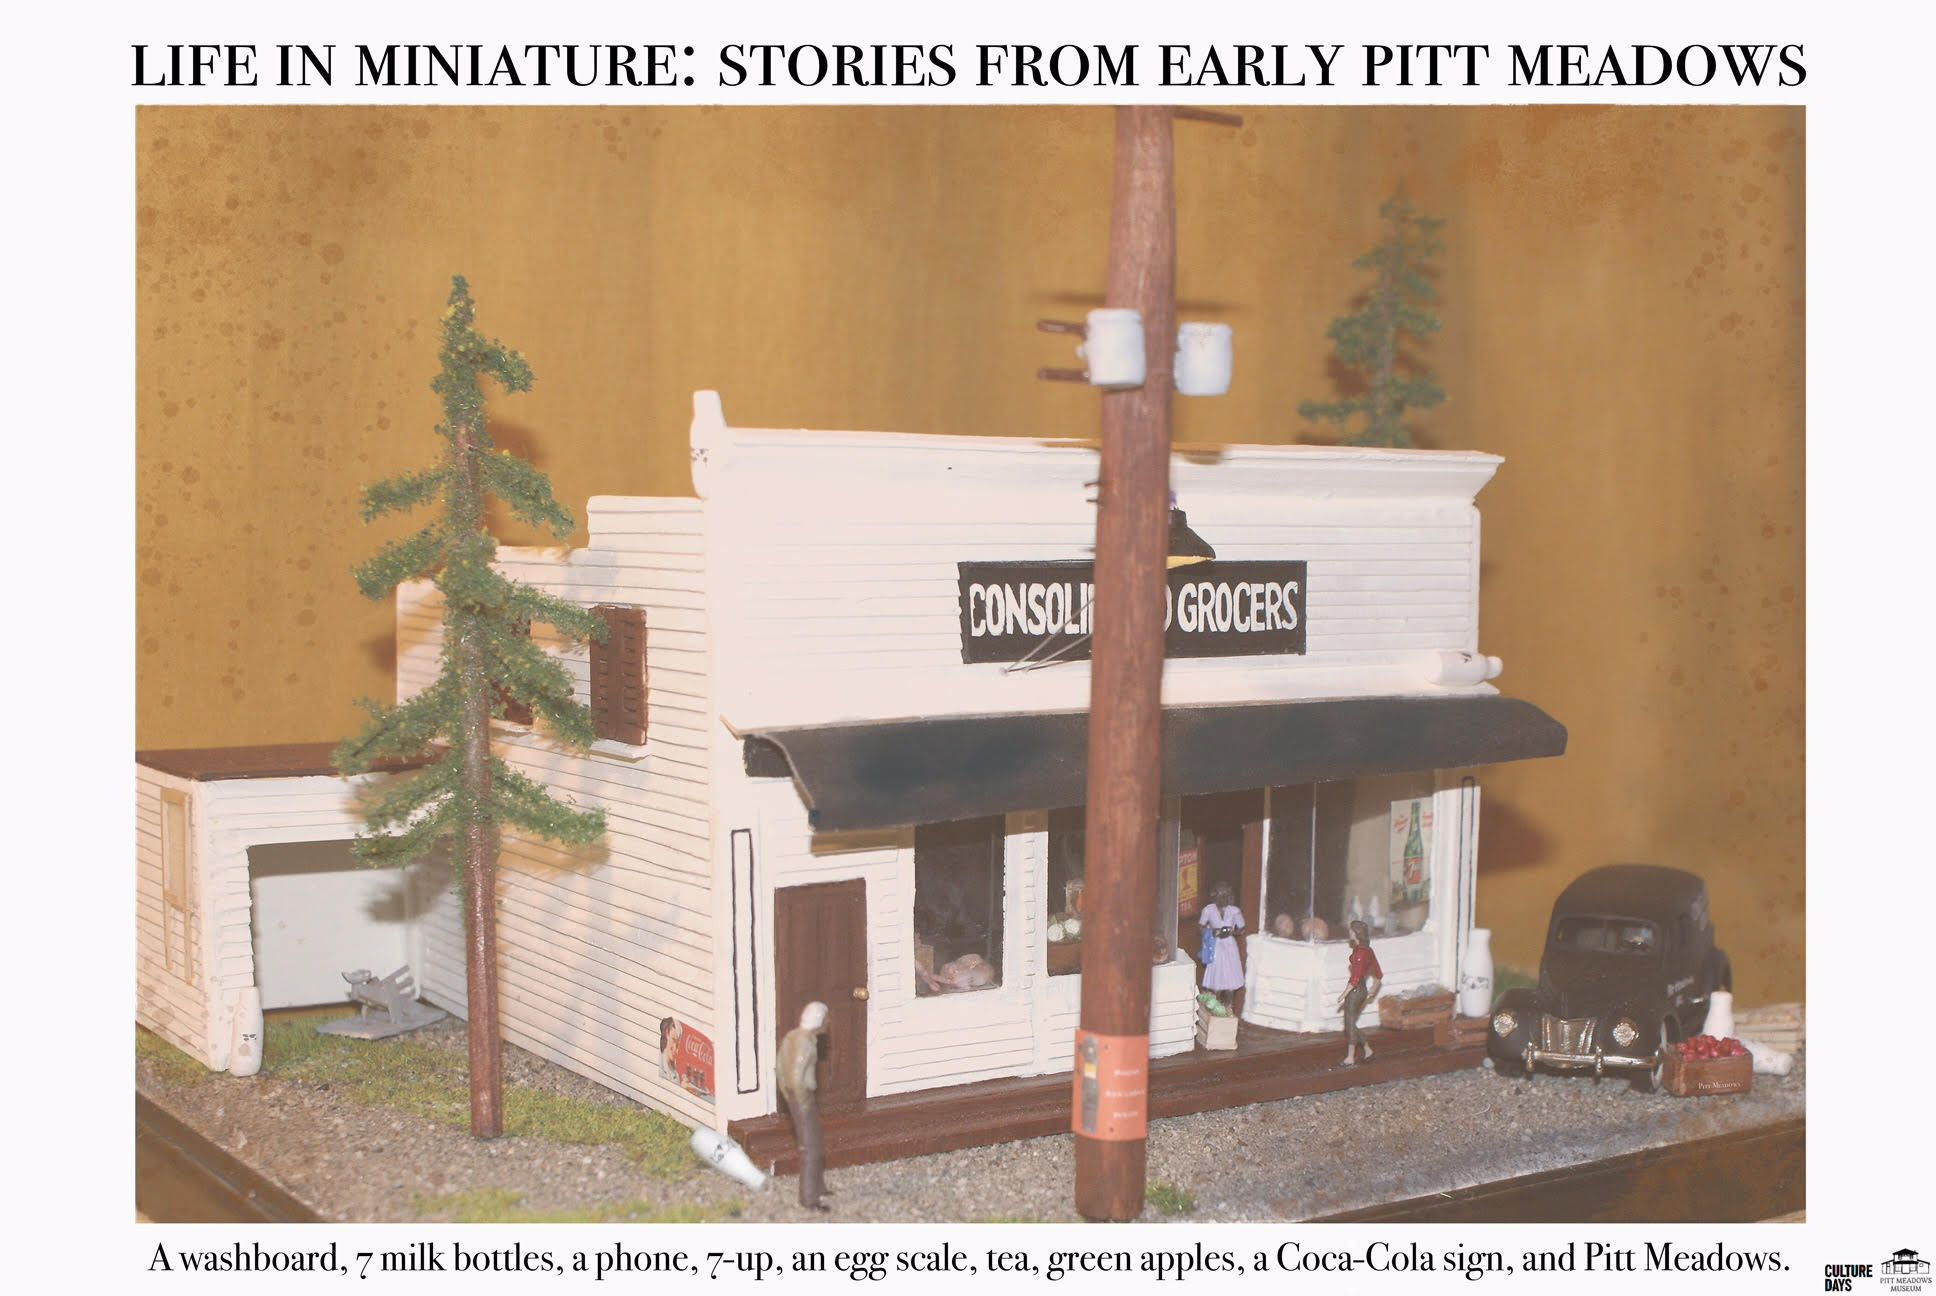 Consolidated Grocers Miniature